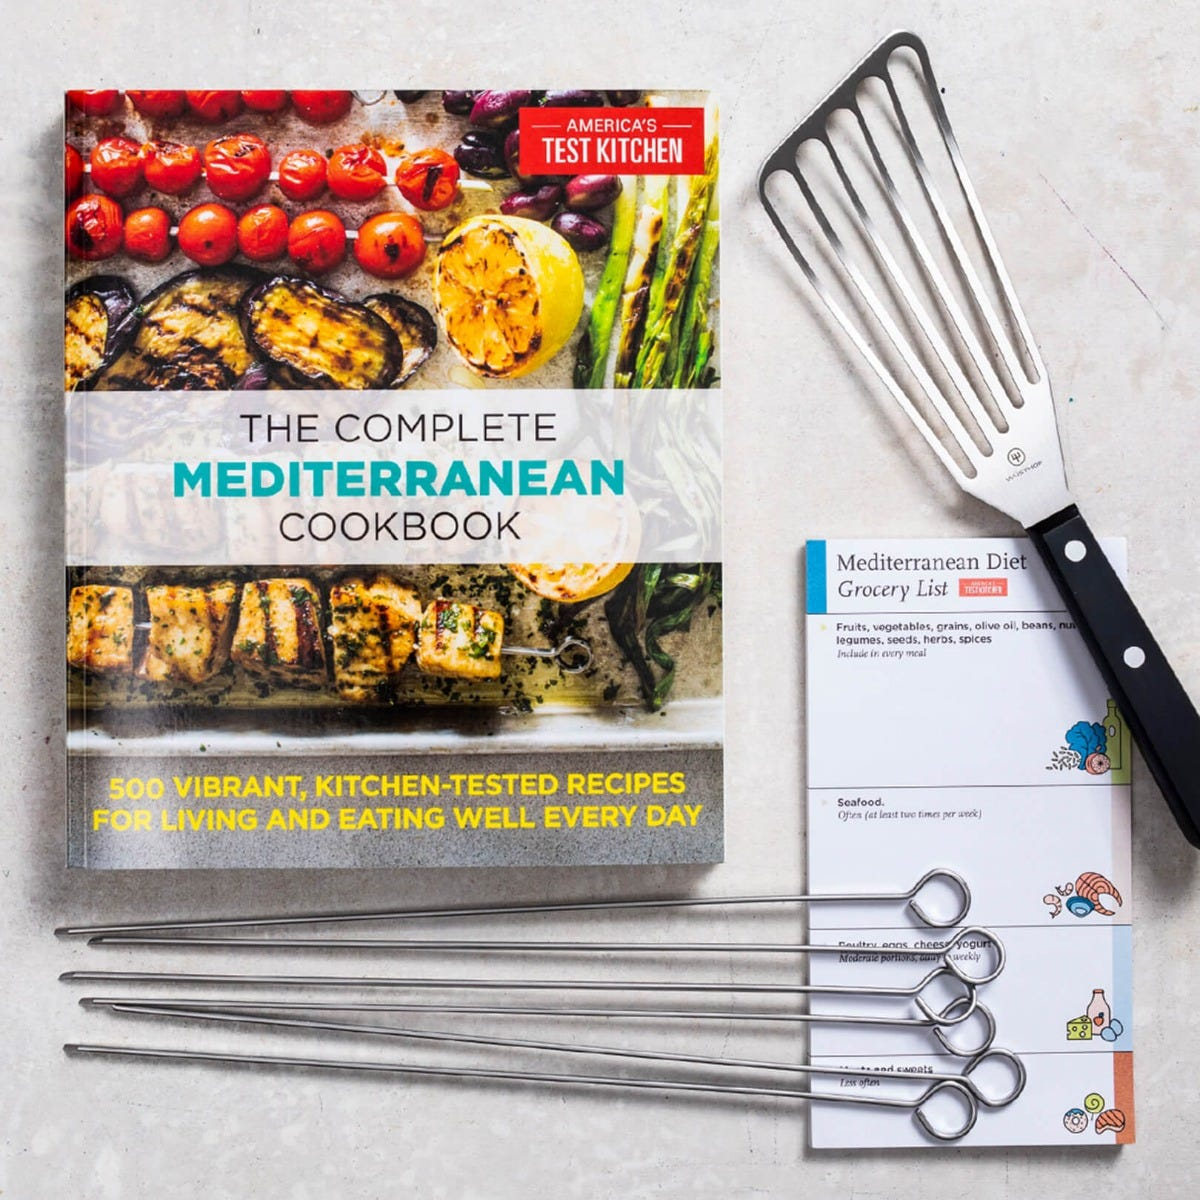 The Mediterranean Kit